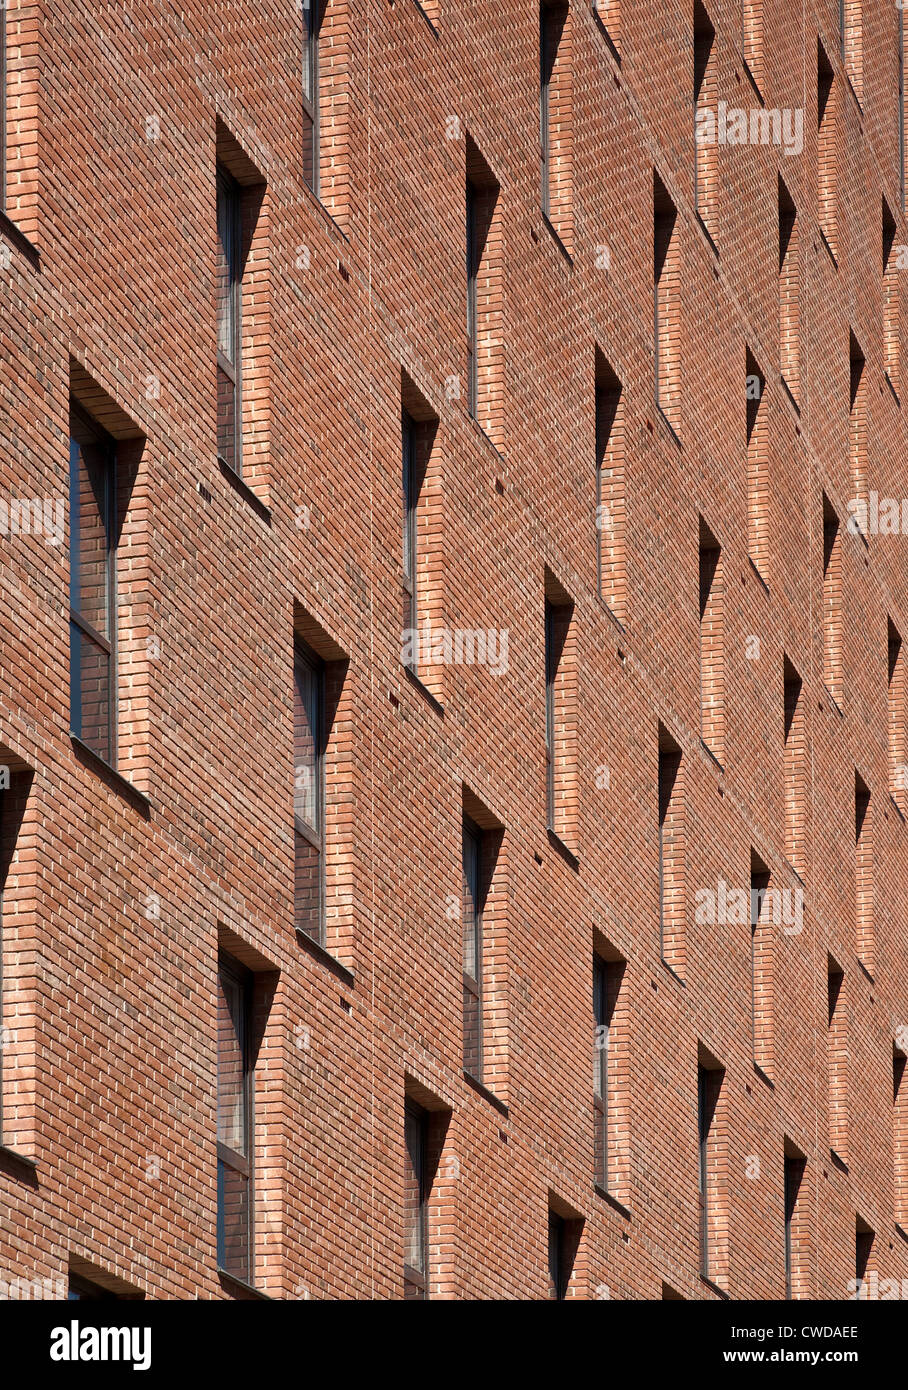 Windows in an apartment block in East Road, London. - Stock Image